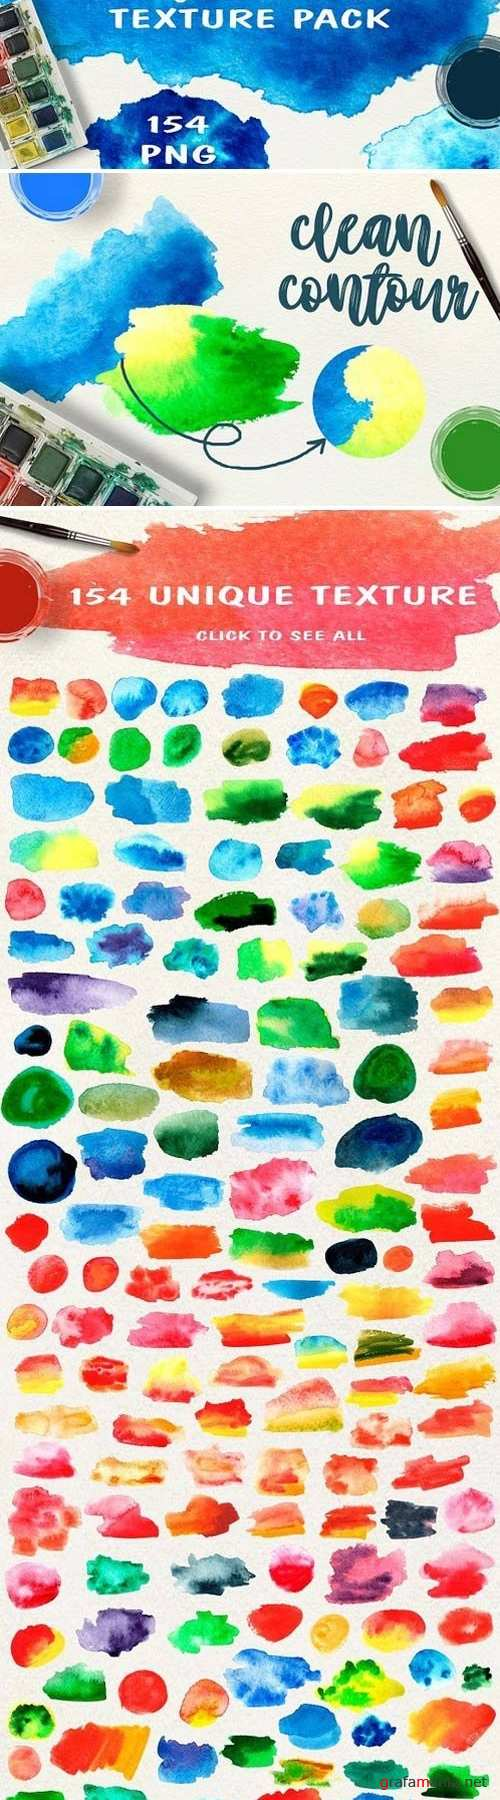 Watercolor Texture Pack 1776141